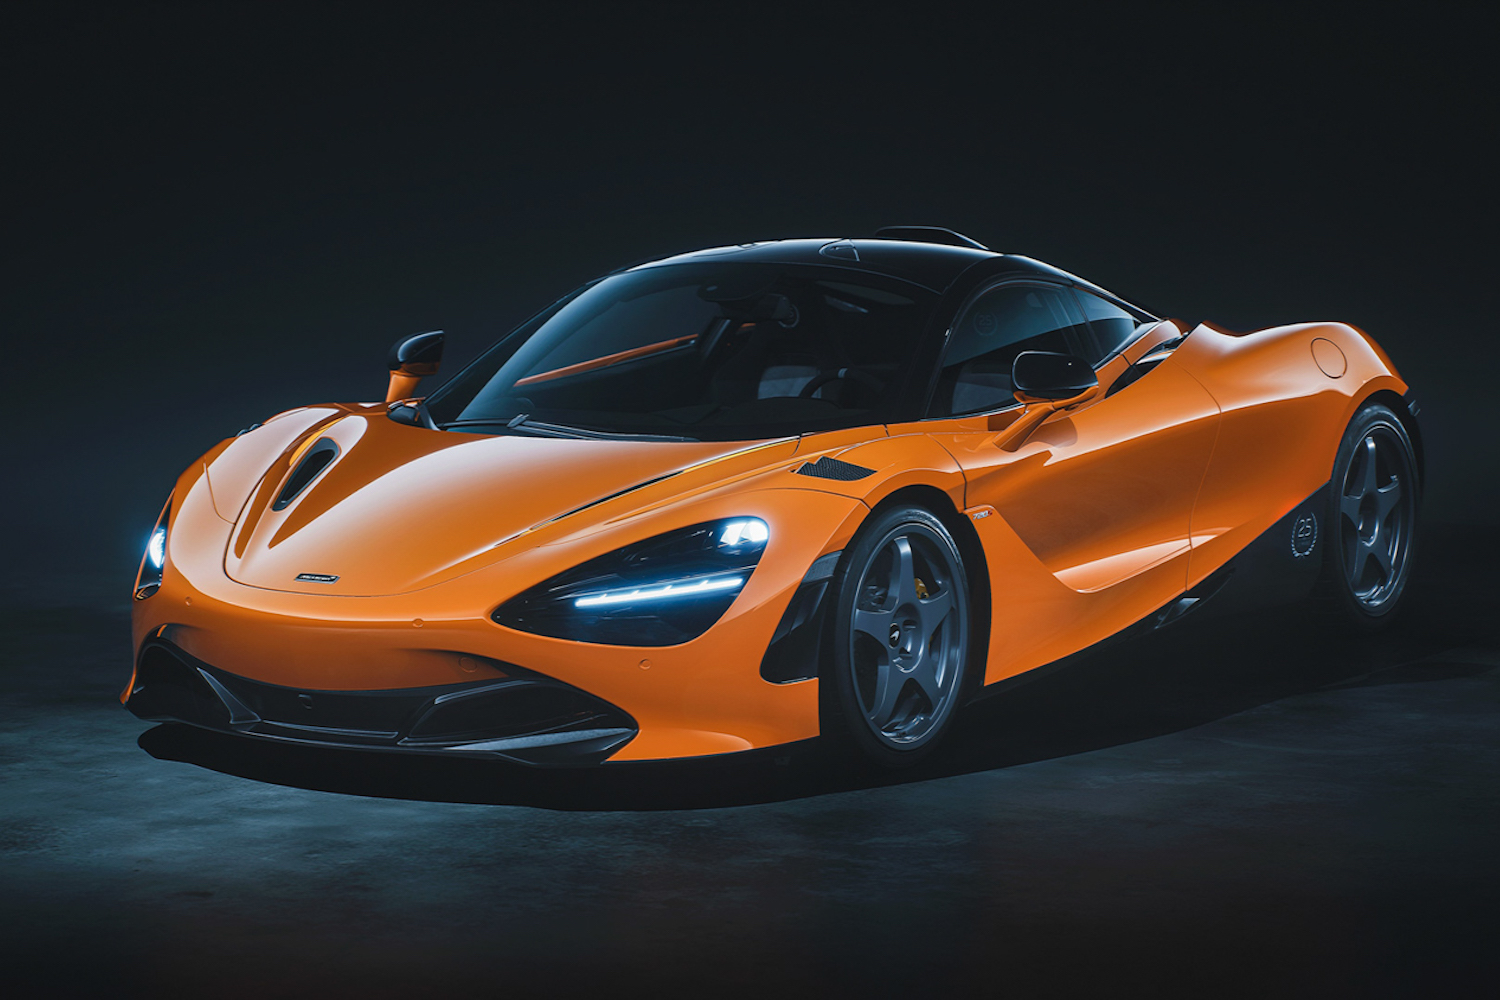 Car News | McLaren celebrates Le Mans win with special 720S | CompleteCar.ie